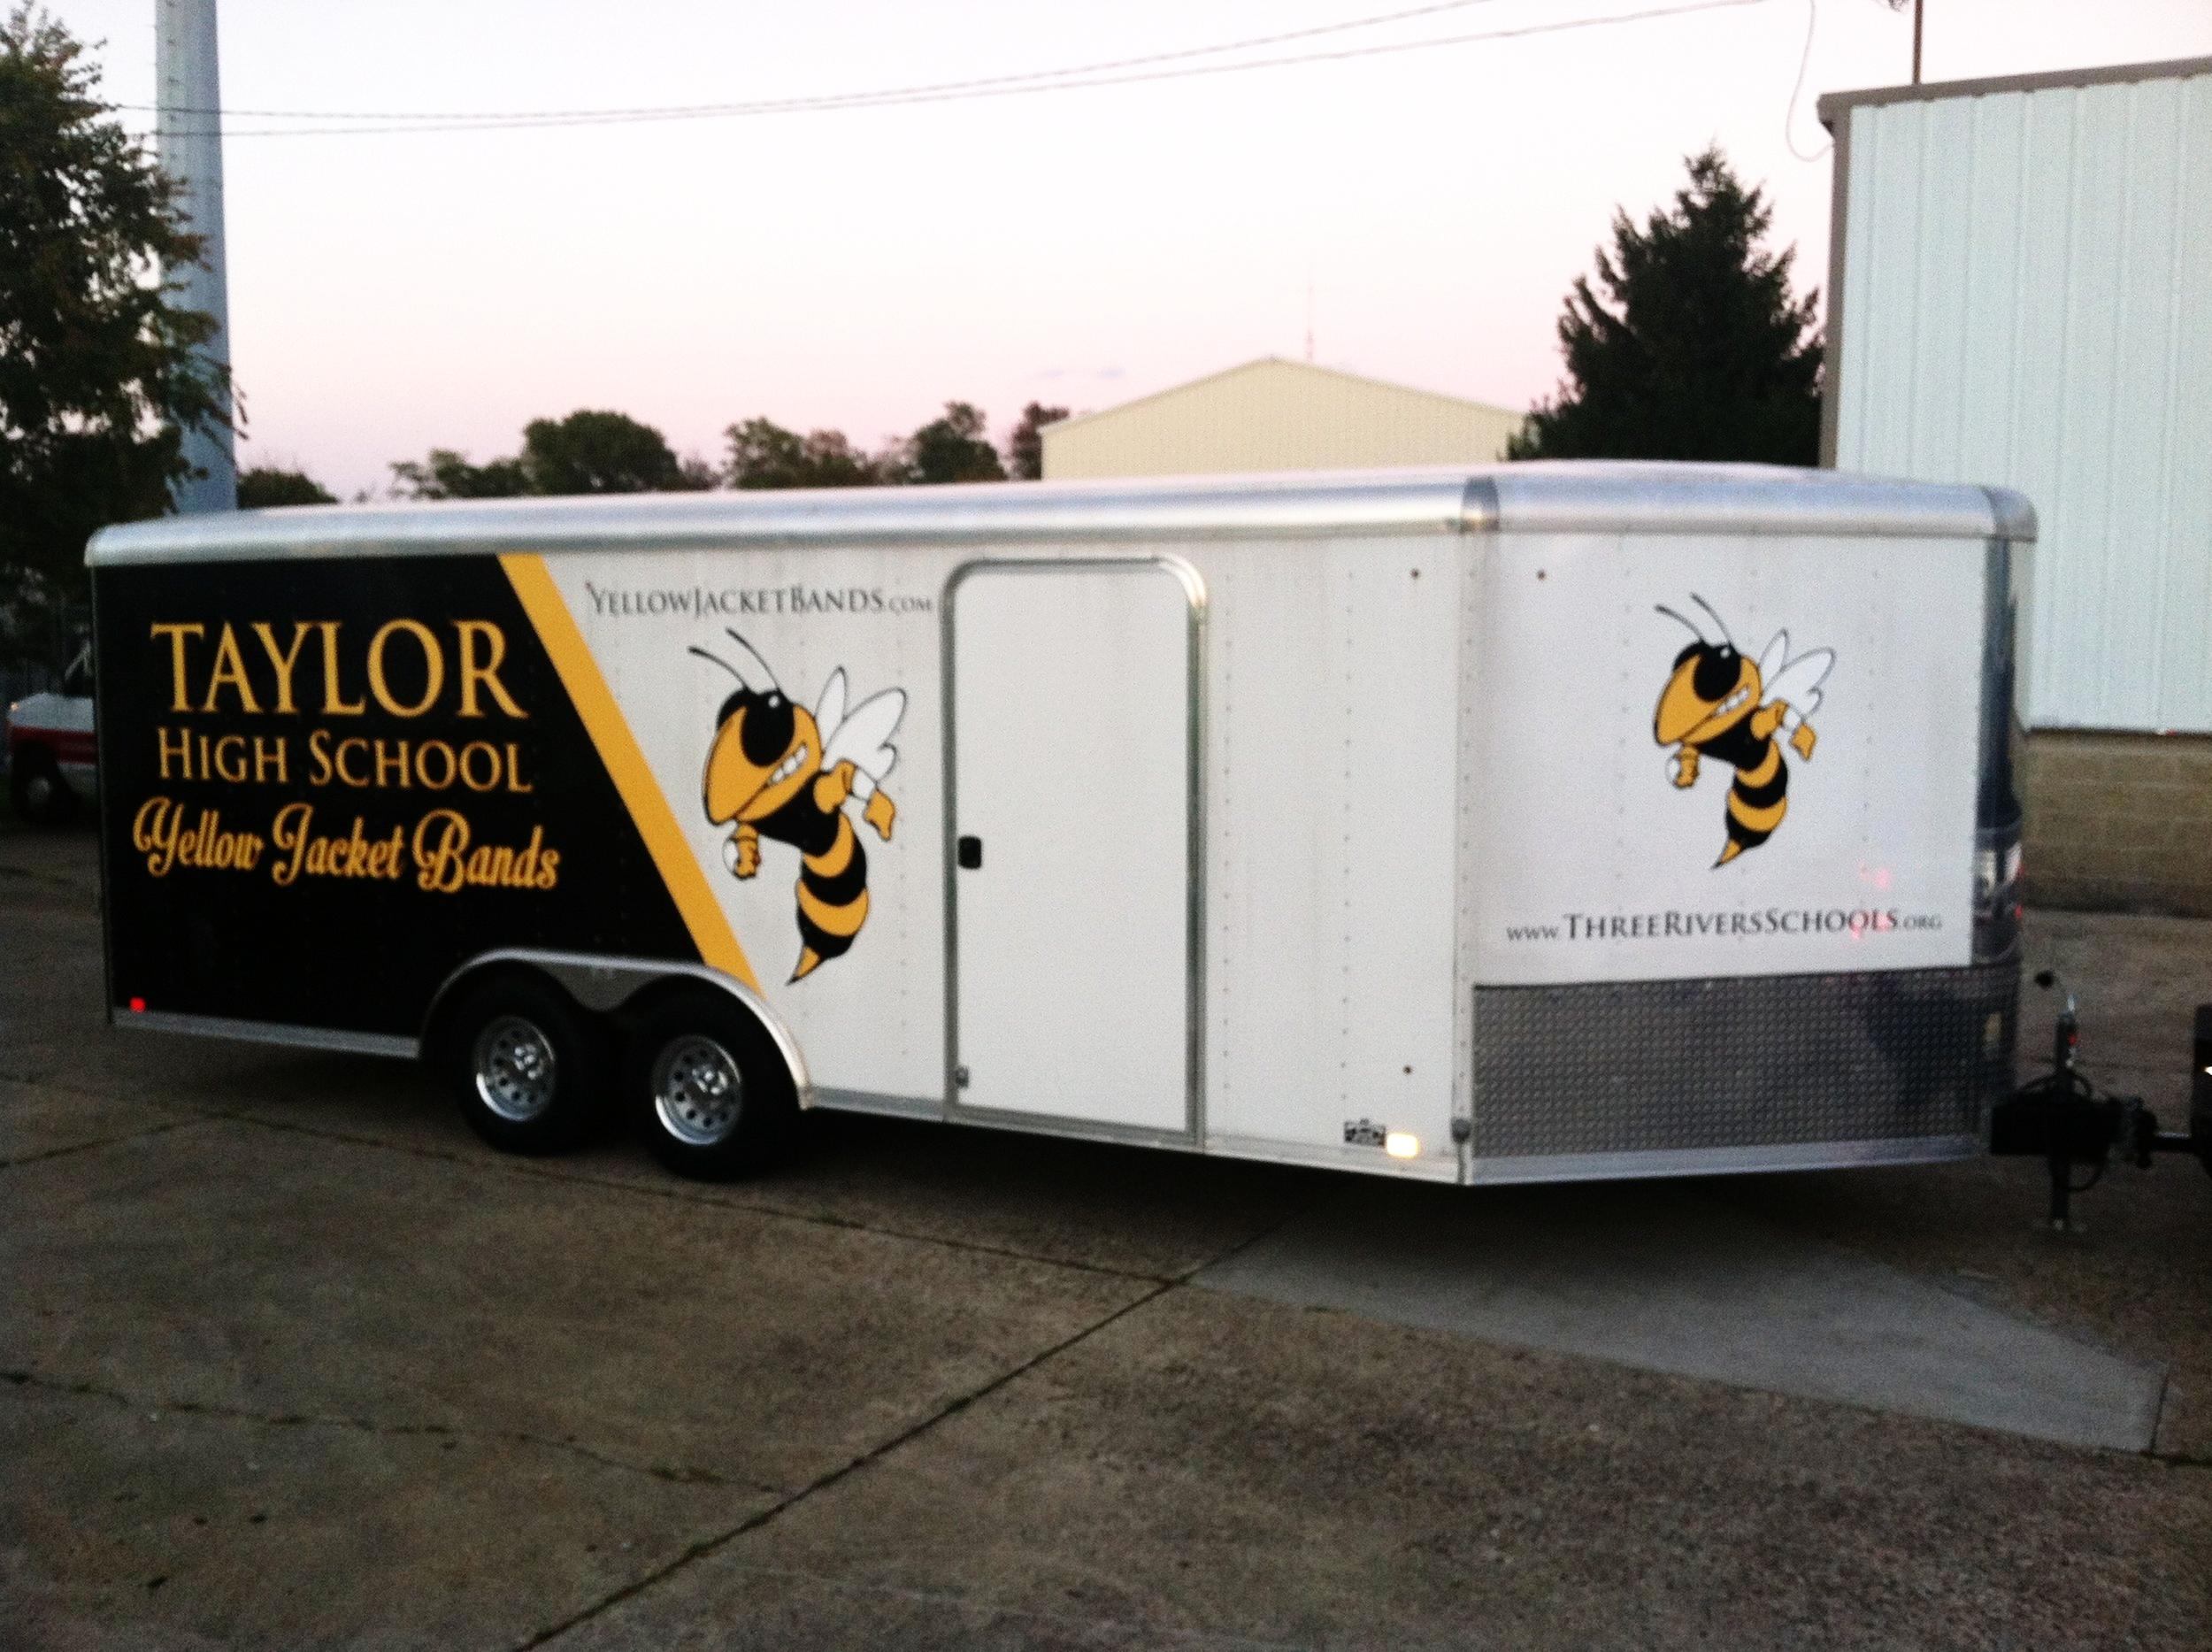 131007 - Taylor High School Band Trailer, PS.JPG